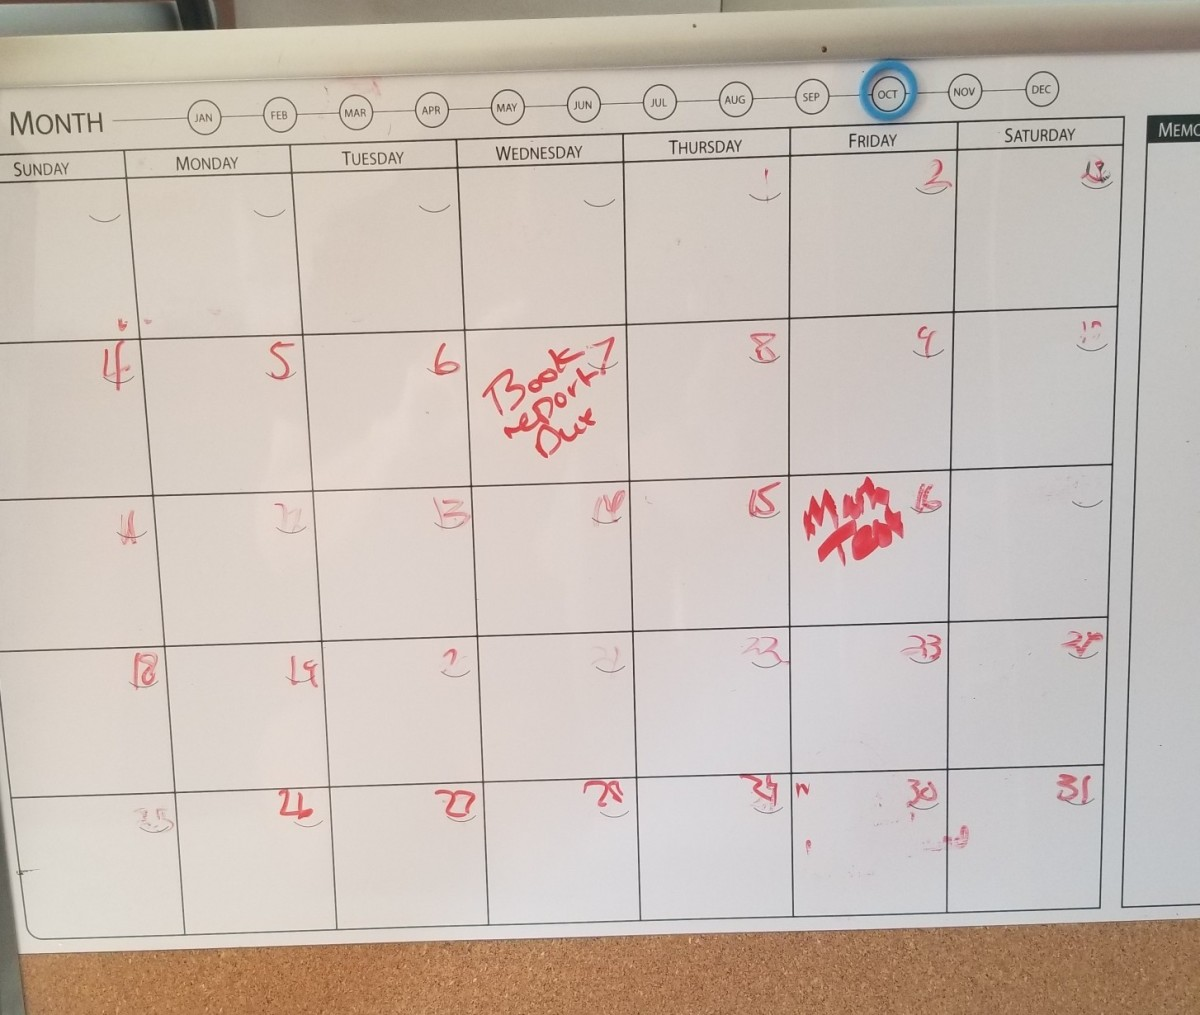 A calendar can make it easy to keep track of assignments.